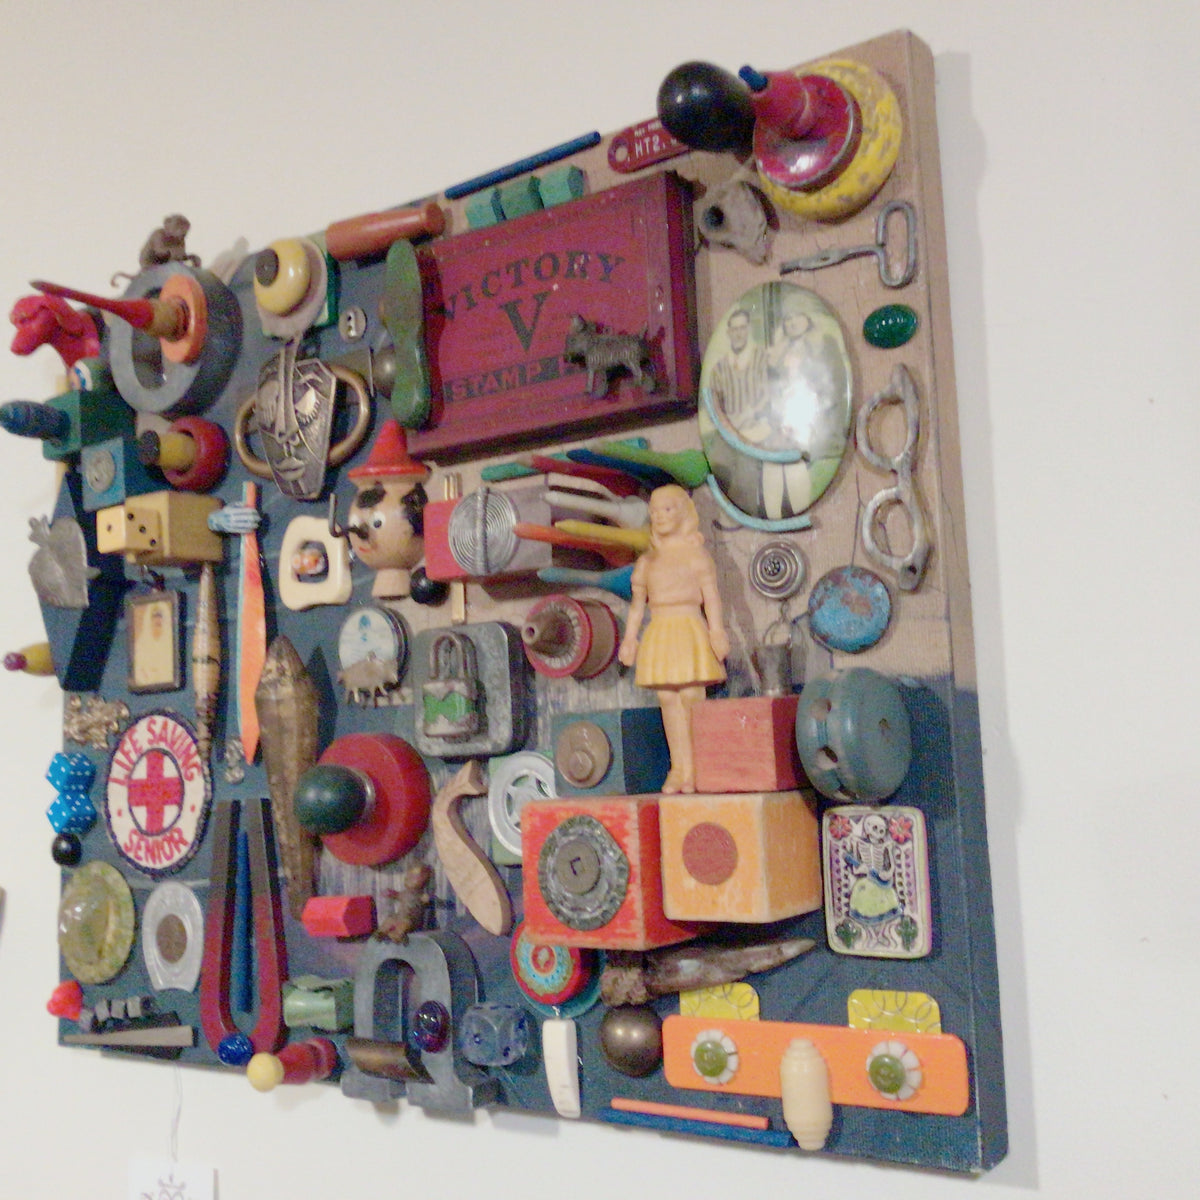 Assemblage Art - Where's My Glasses